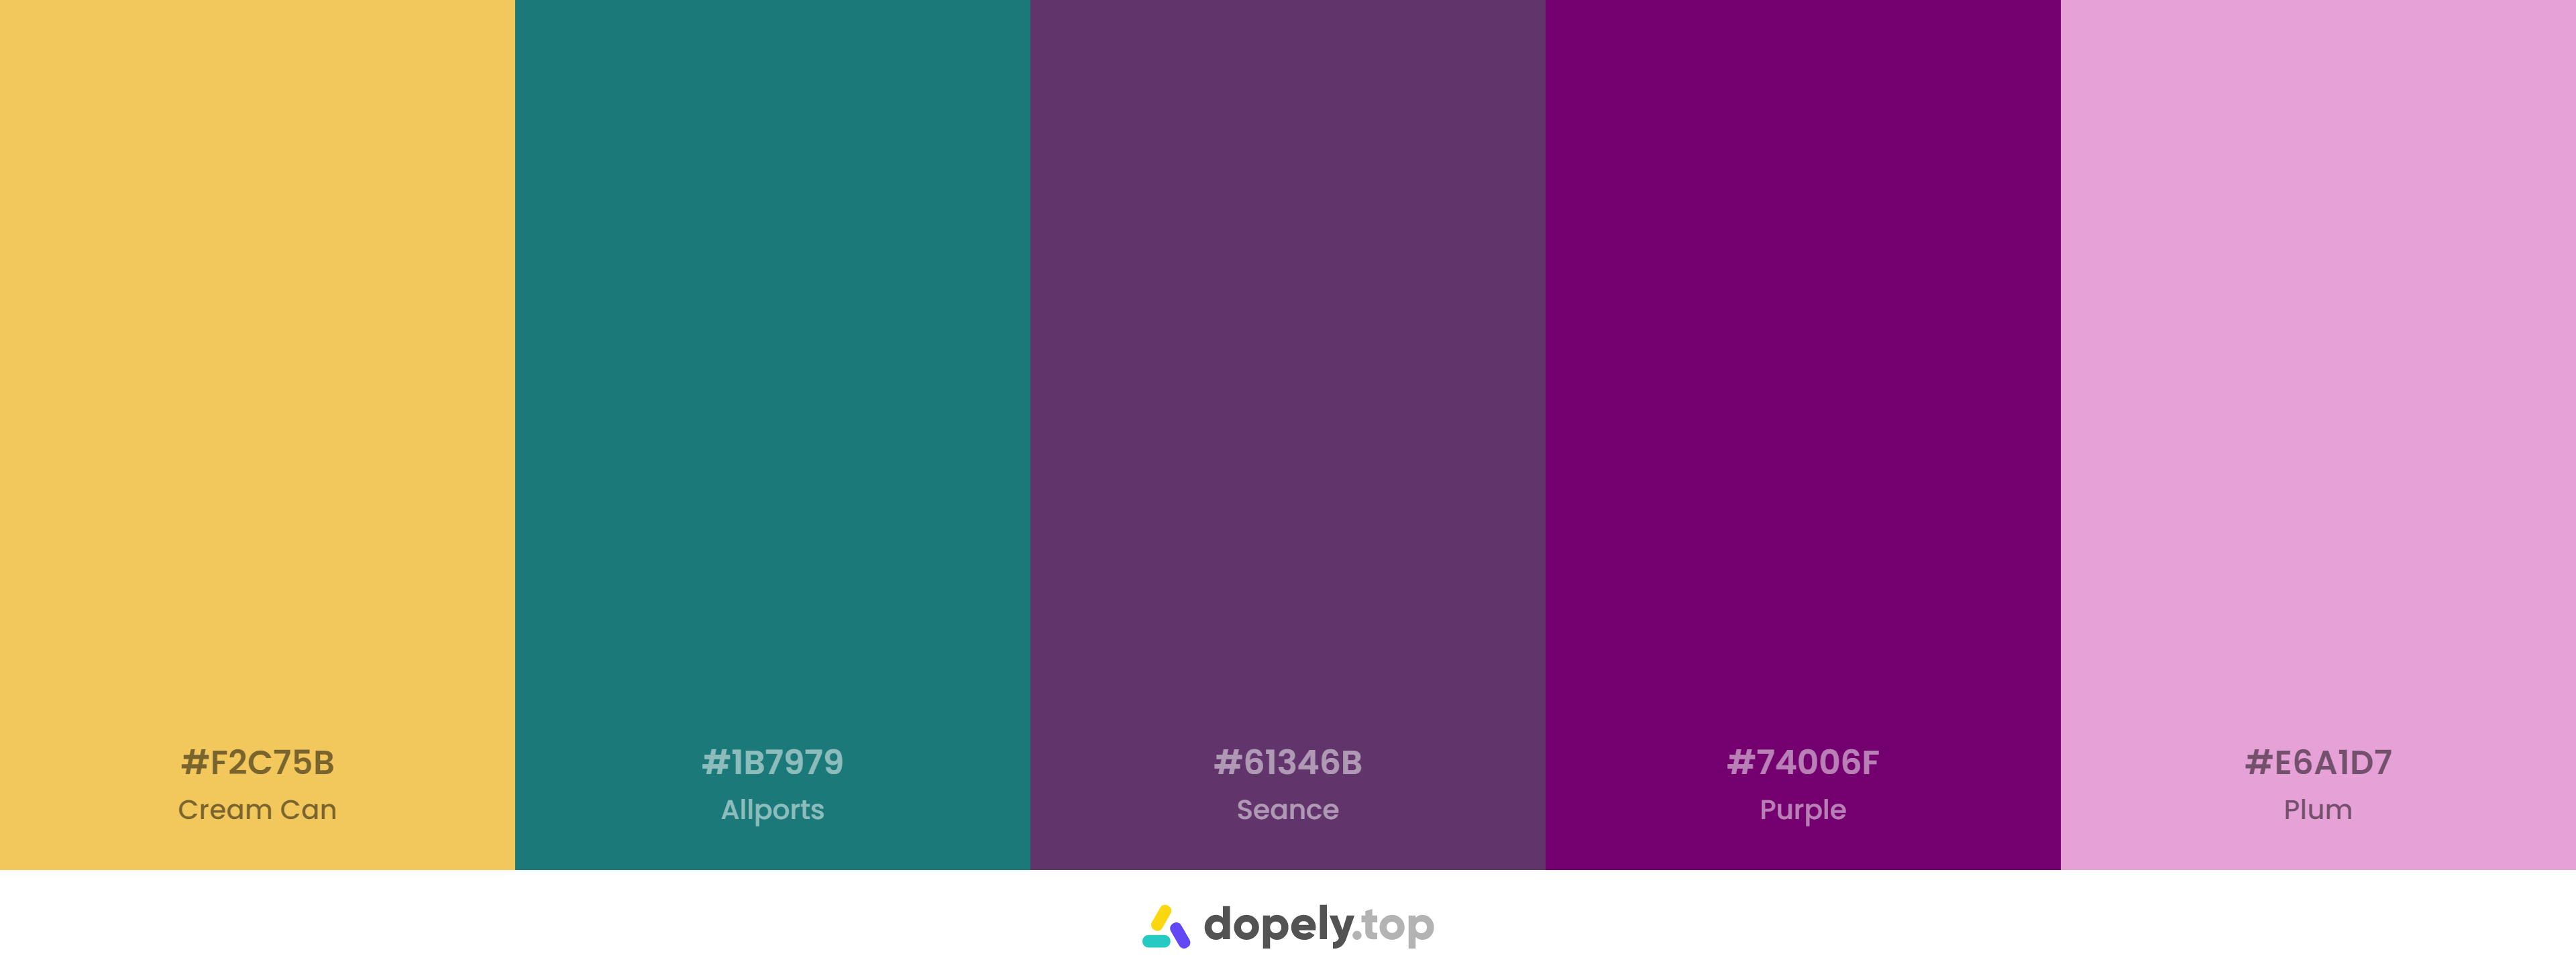 A wealthy palette with purple, green, and yellow